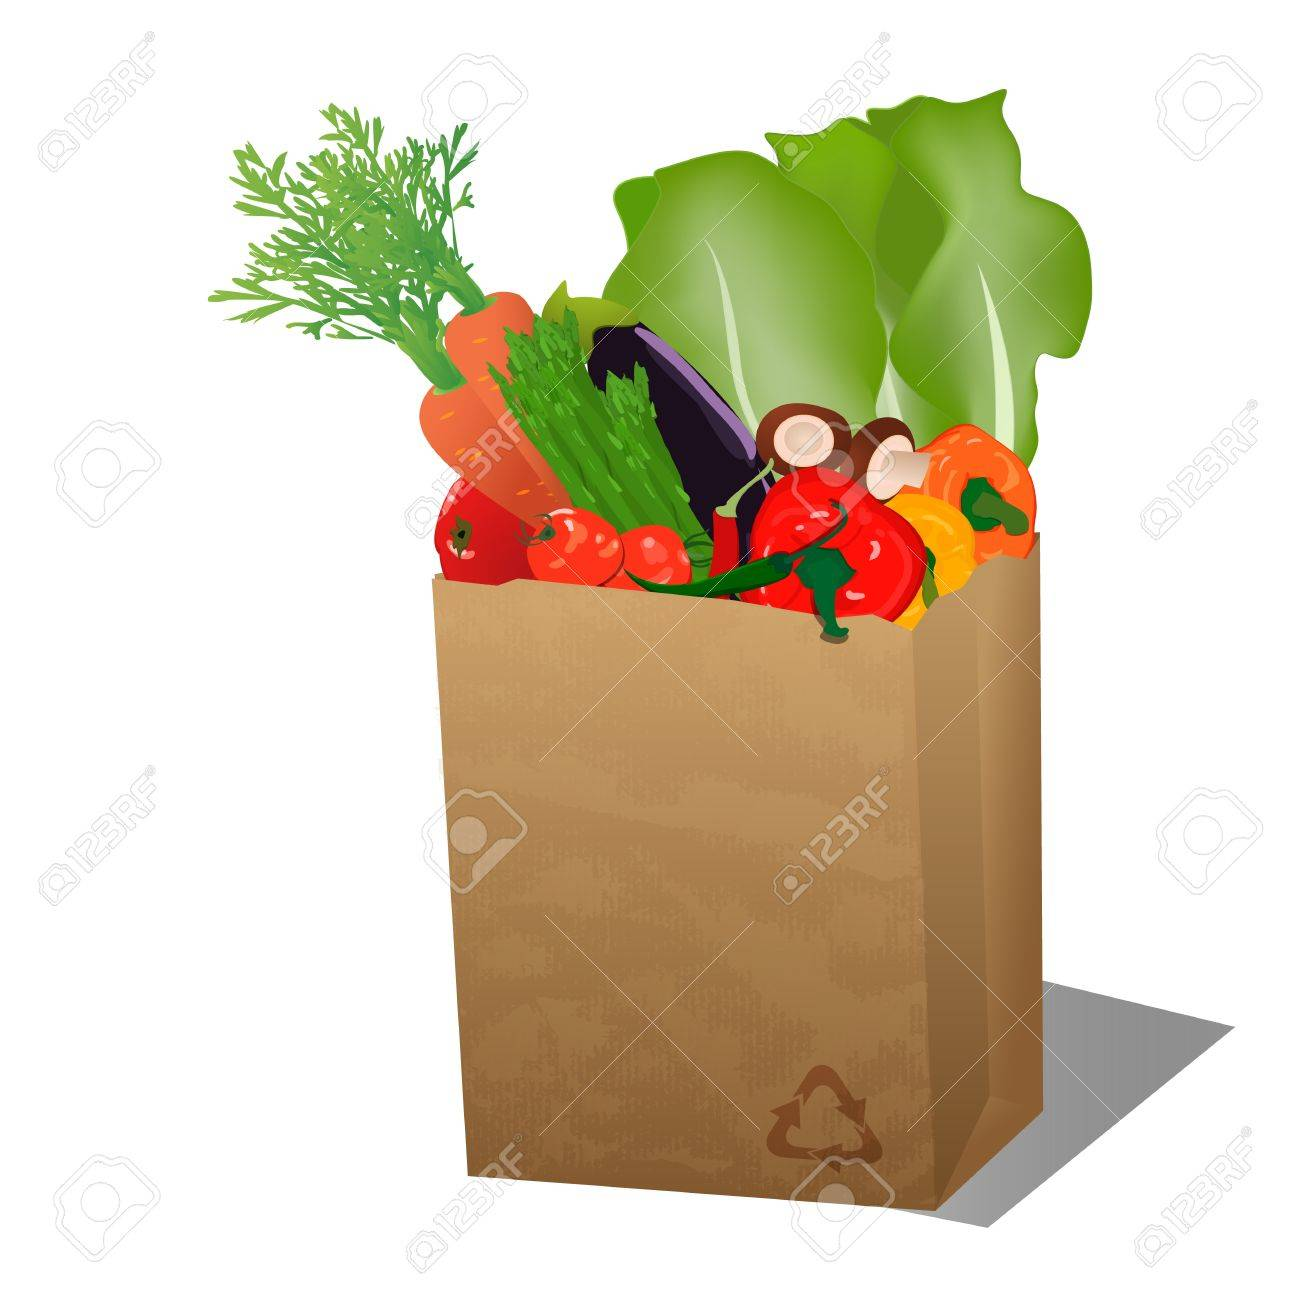 Recycled sopping paper bag with veggies Stock Vector - 16218669